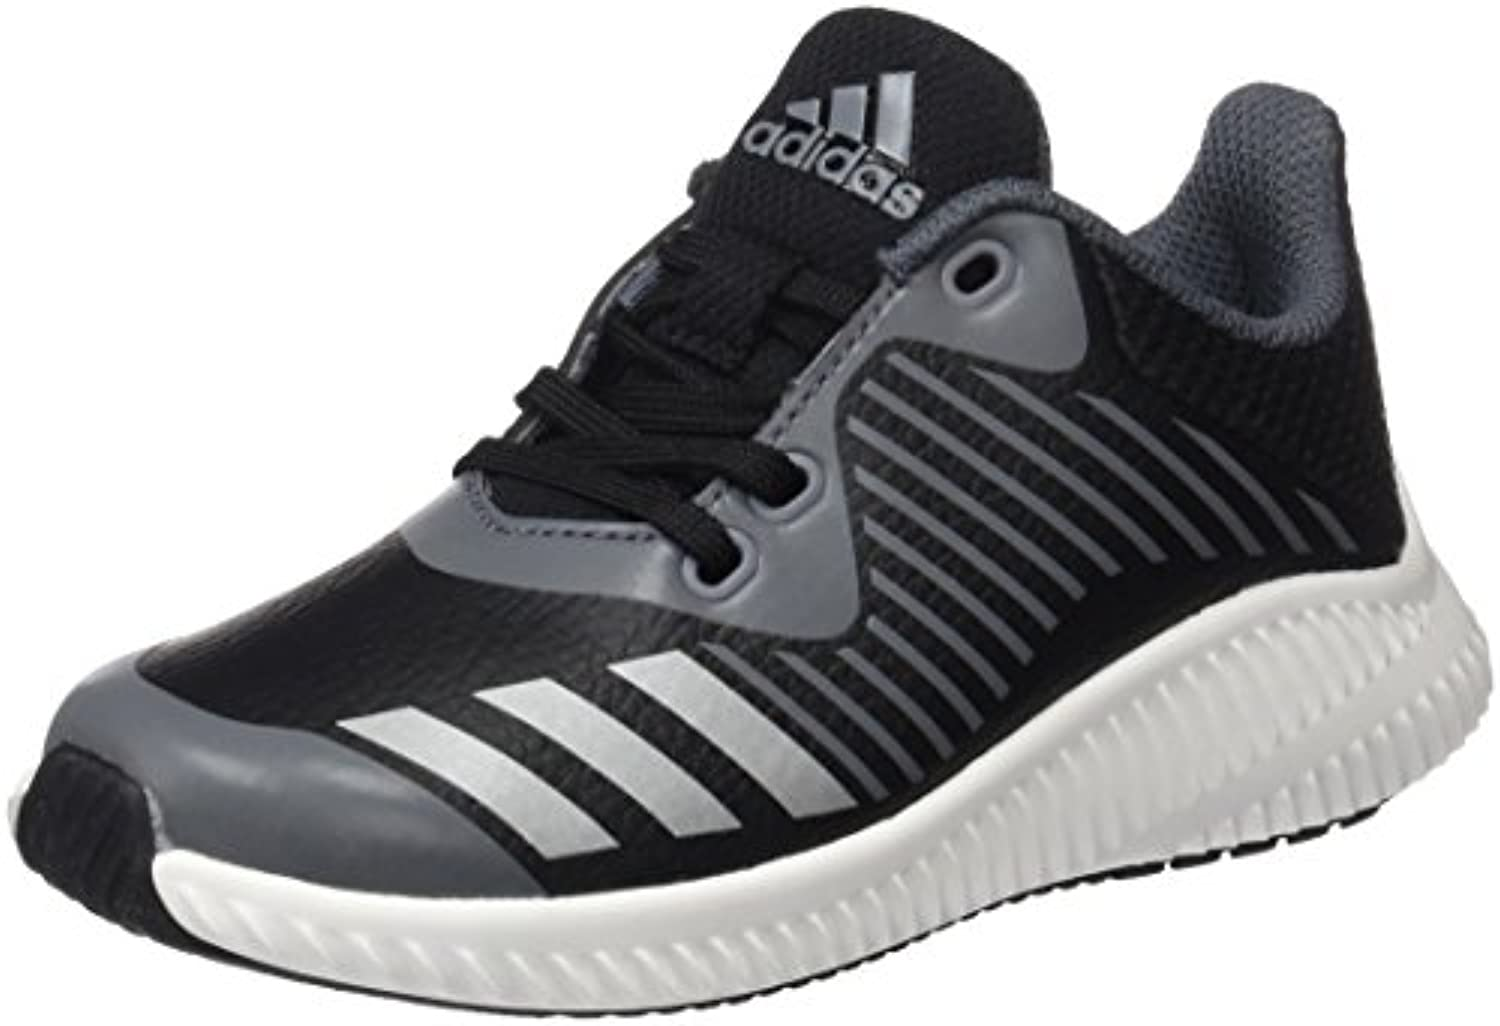 Gentleman/Lady Gentleman/Lady Gentleman/Lady adidas Unisex Kids' Fortarun K Gymnastics Shoes flagship store Cheaper than the price Very good classification BH94134 acc92f